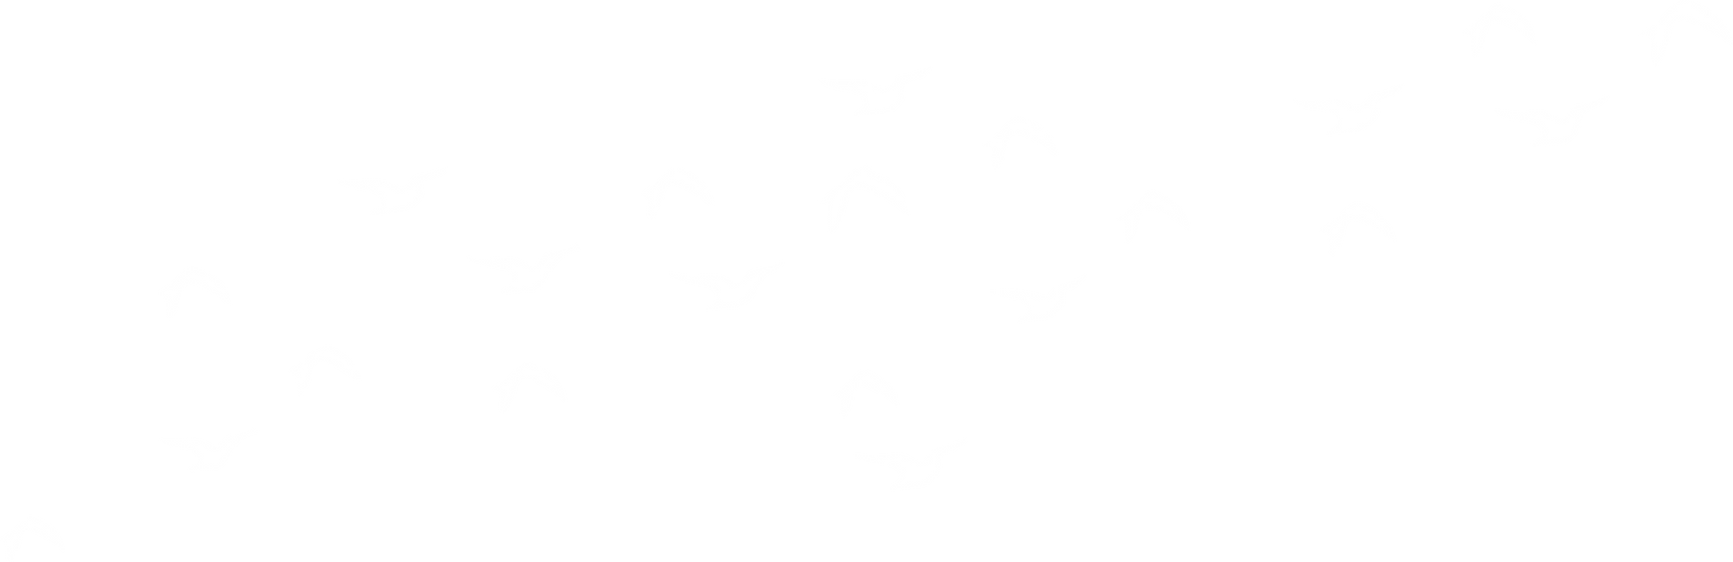 Birds graphic.png